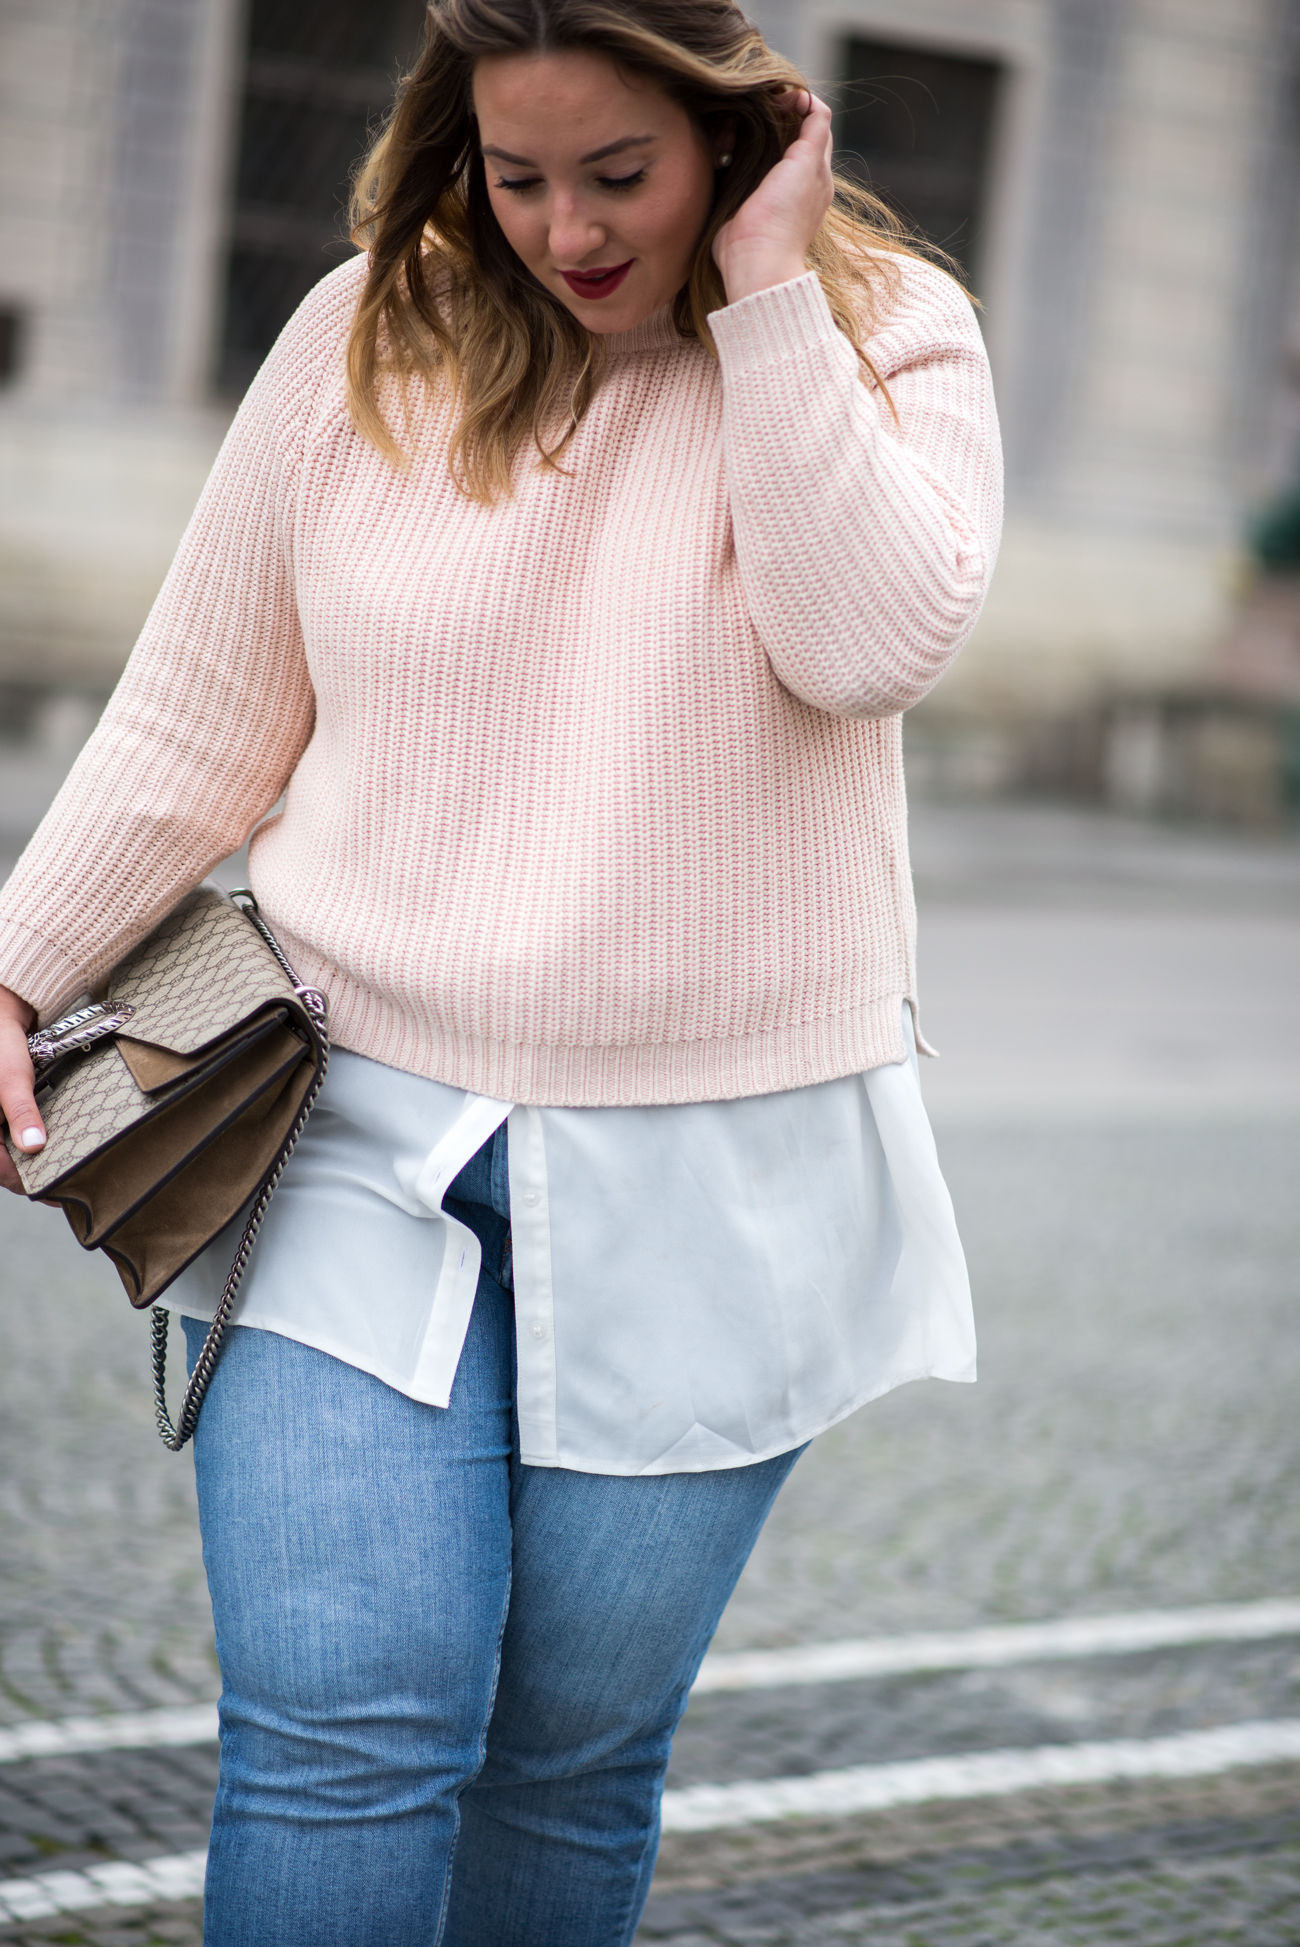 the-skinny-and-the-curvy-one_fashion_plussize_marina-rinaldi_chanel_jeans_blue-jeans_curve-outfit-inspo_muenchen-blogger_daily-outfit_plus-size-blog_plus-size-blogger-deutschland_-5-von-23